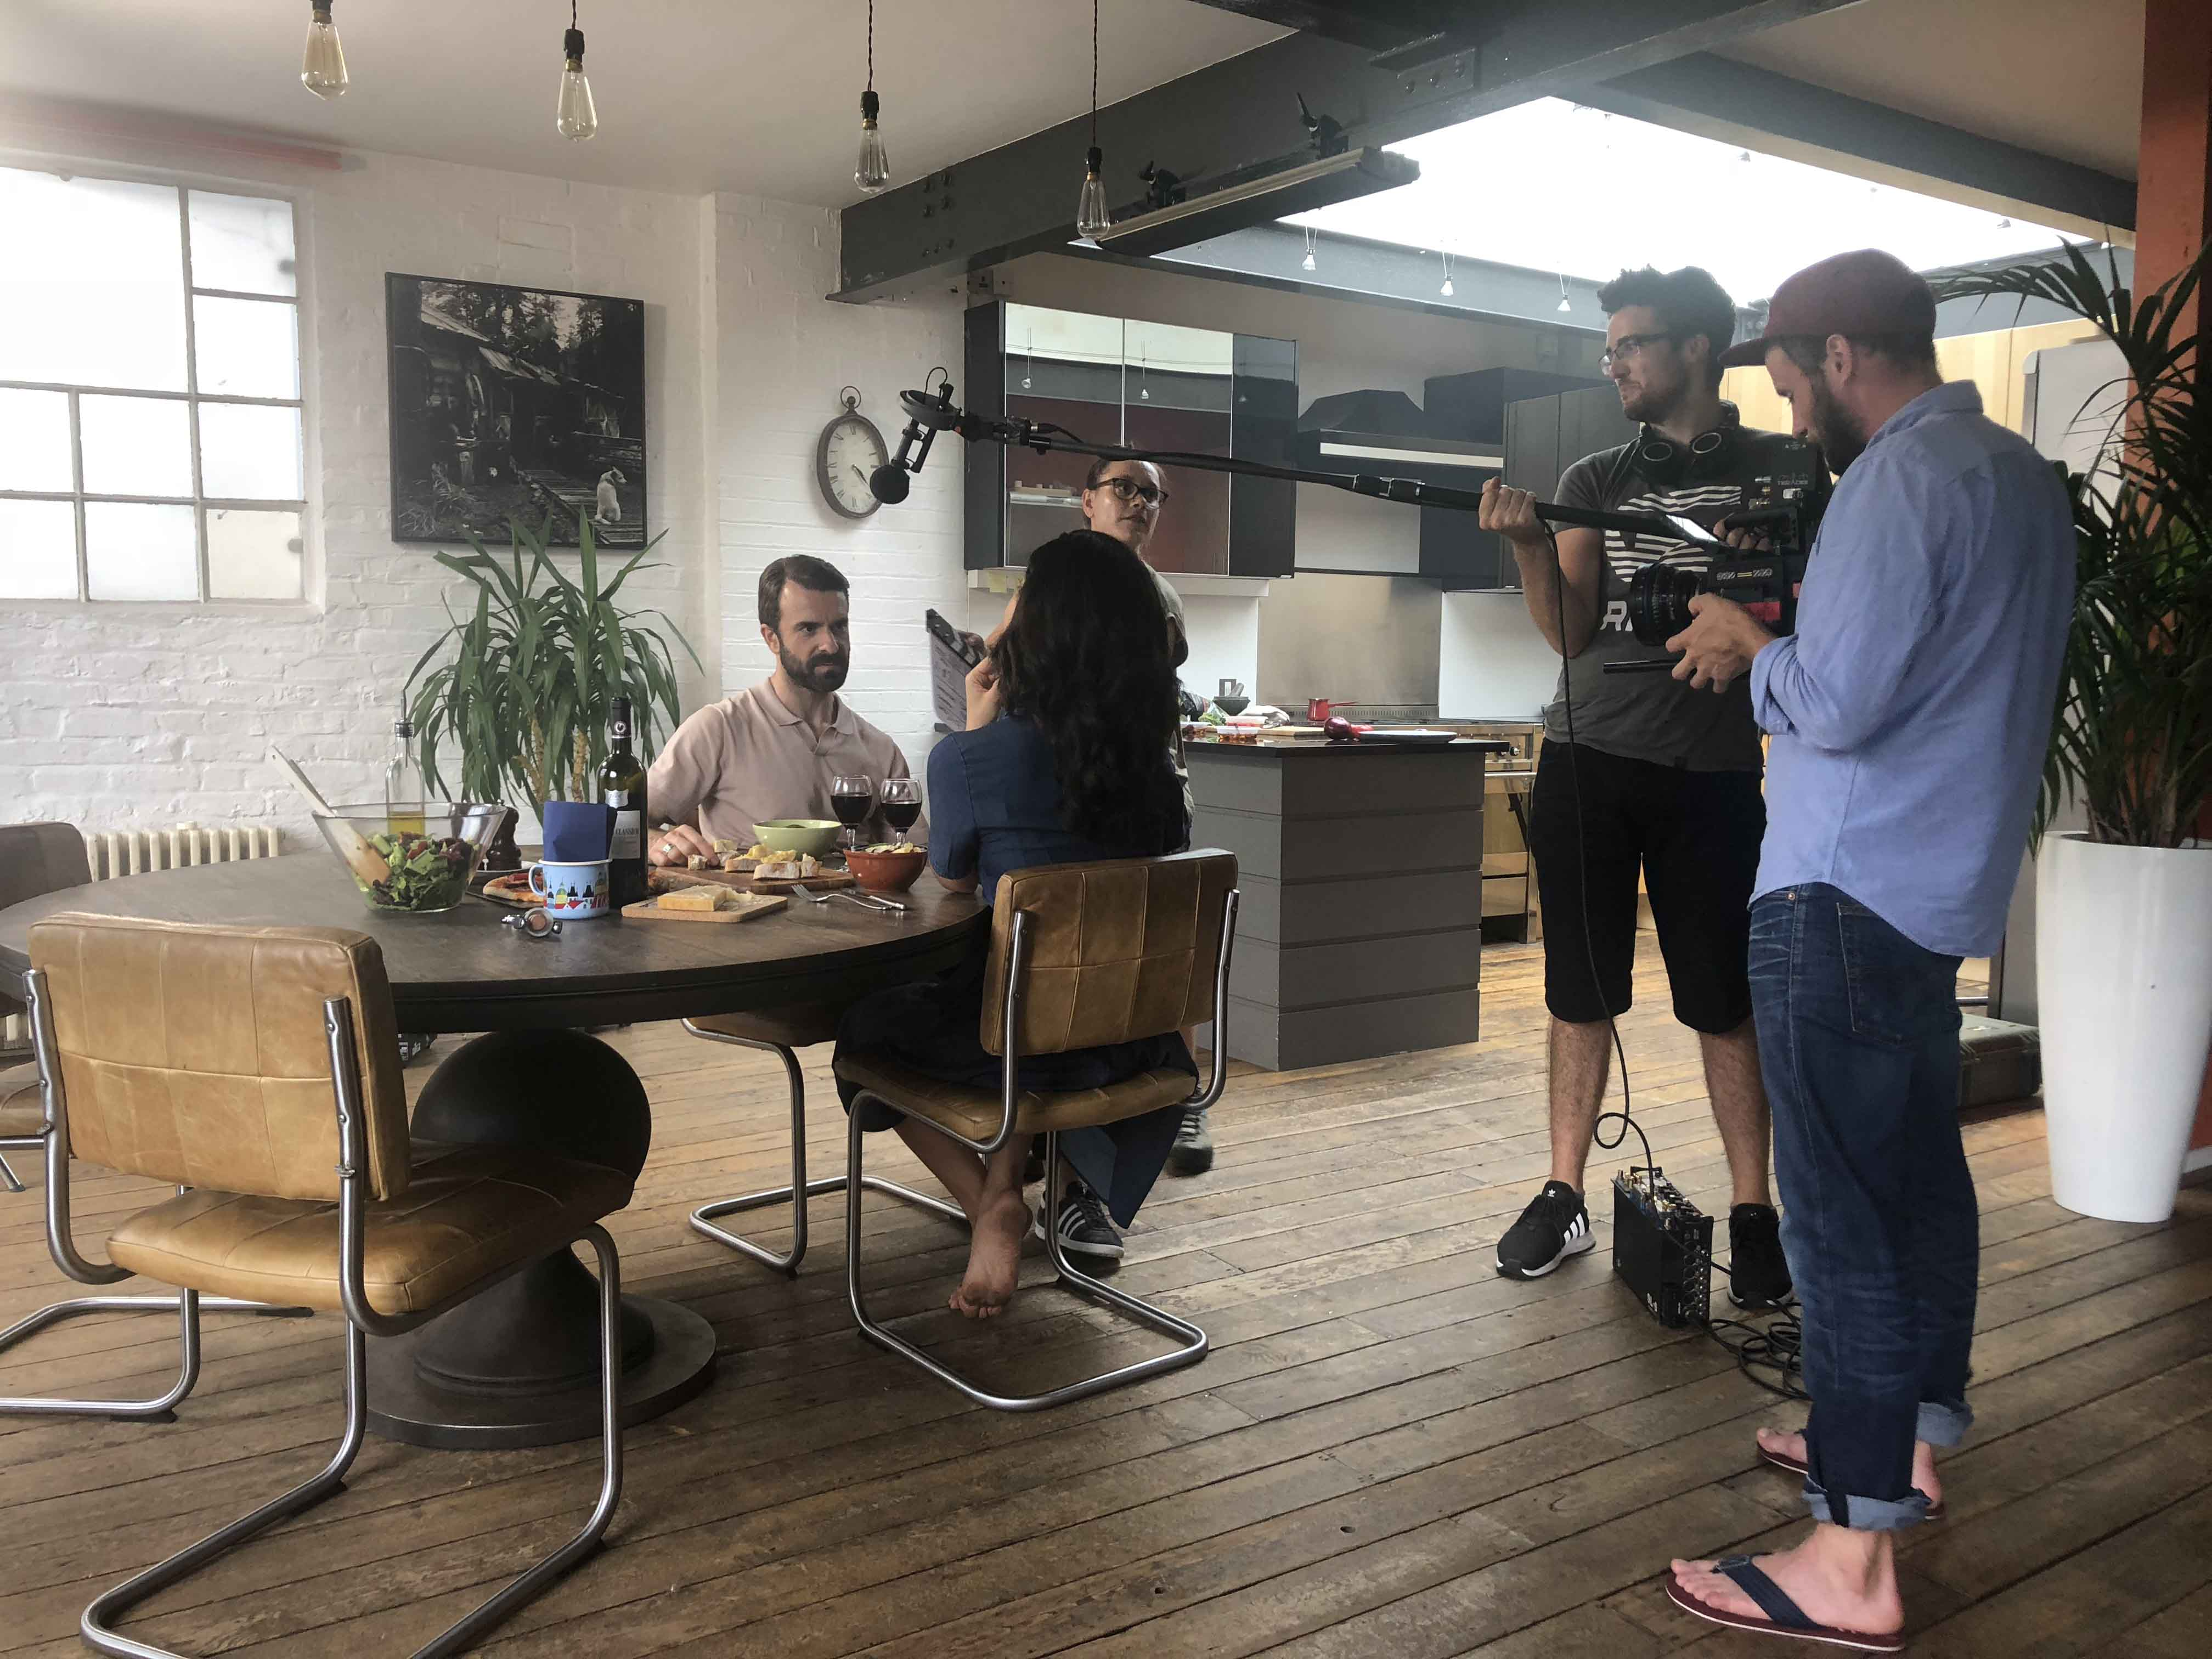 Filming a scene in a kitchen for Deli Discoveries